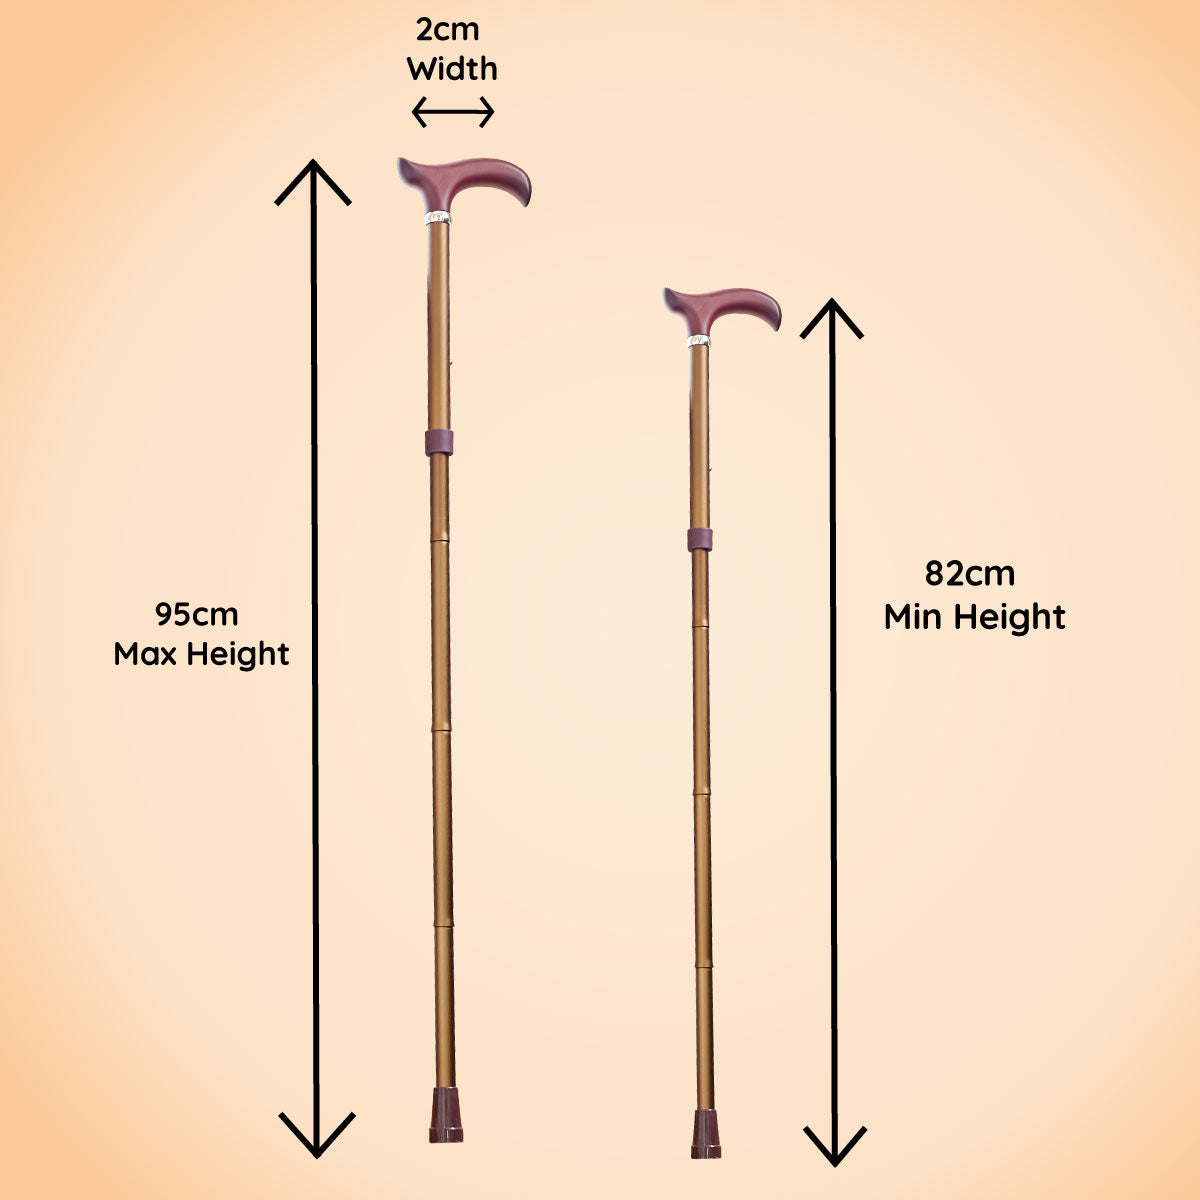 Bronze Walking Stick Dimensions Blue Badge Co